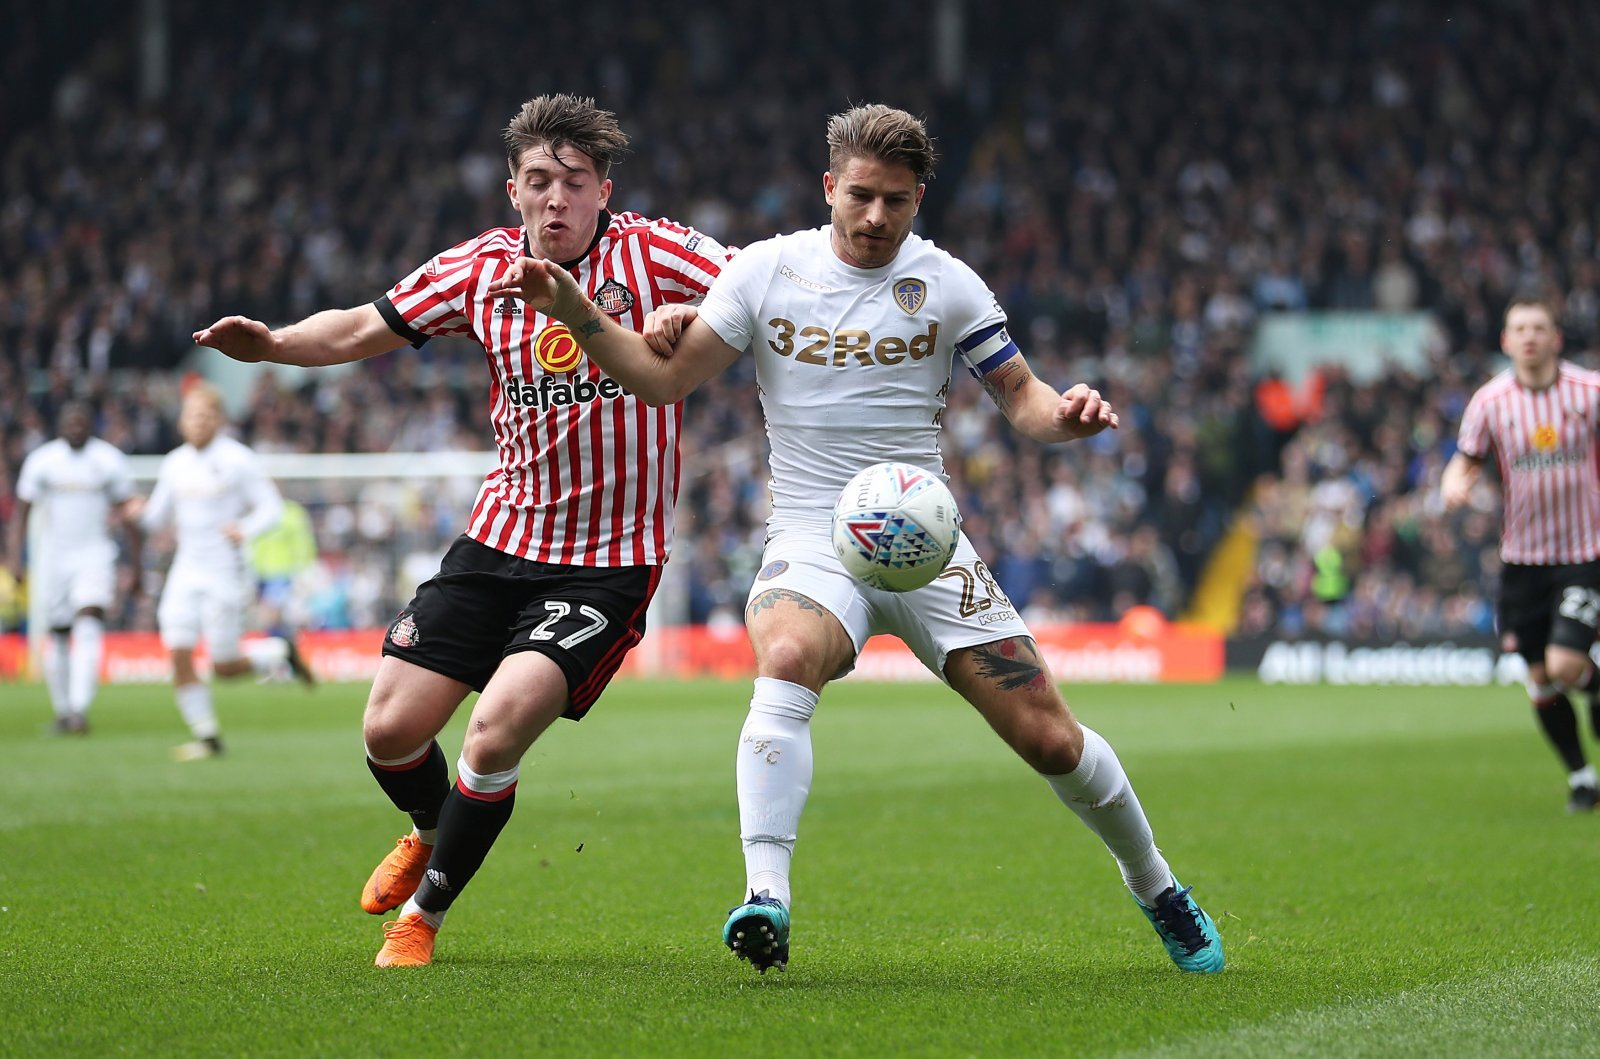 Return of Roofe and Berardi comes at perfect time for Leeds